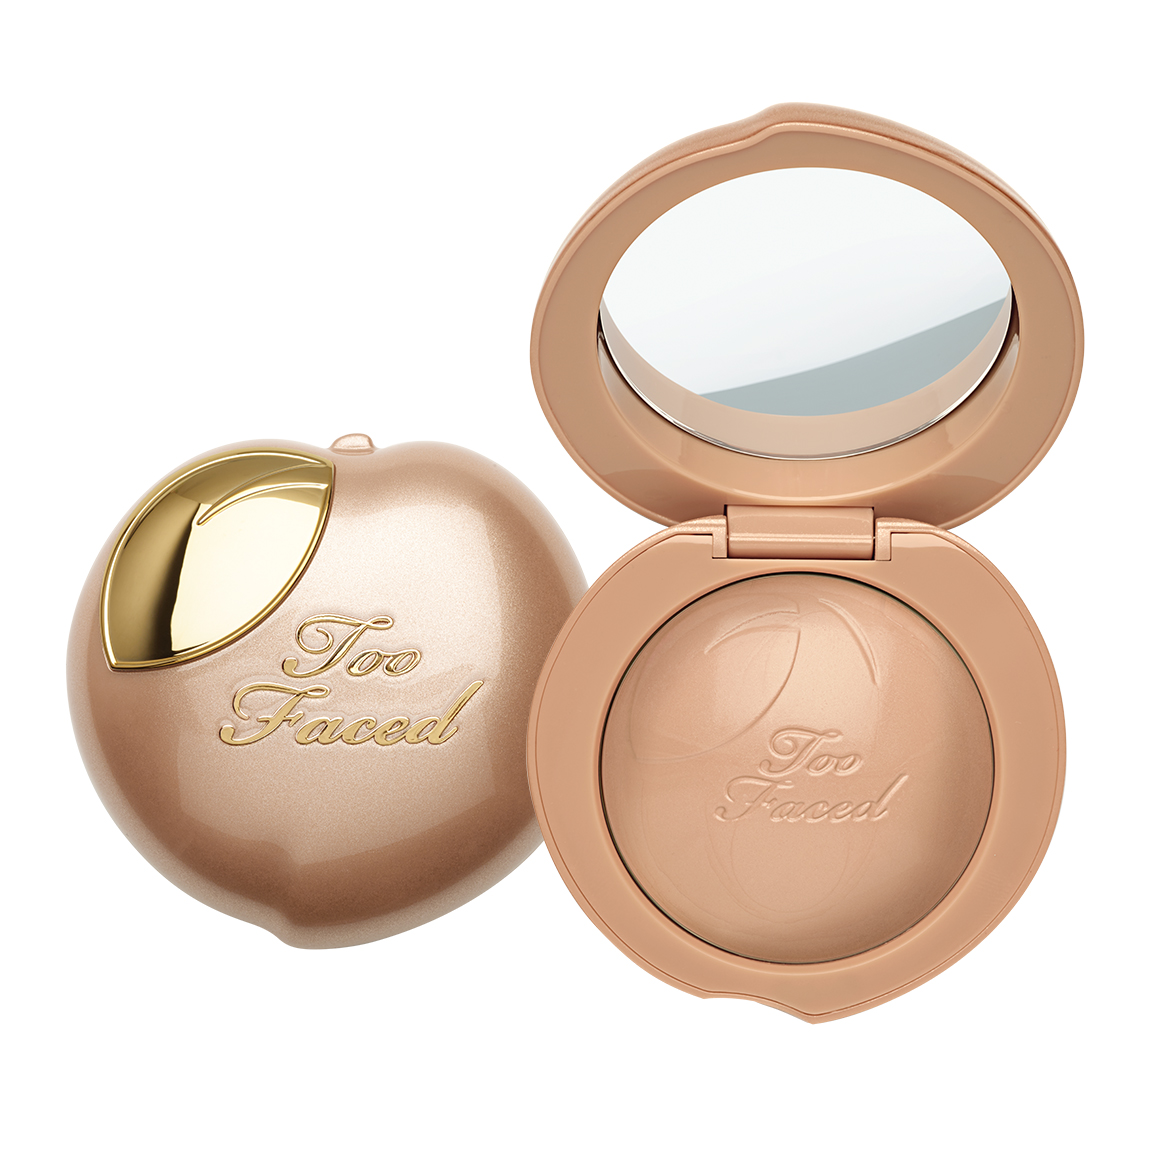 Too Faced Peach Frost Melting Powder Highlighter